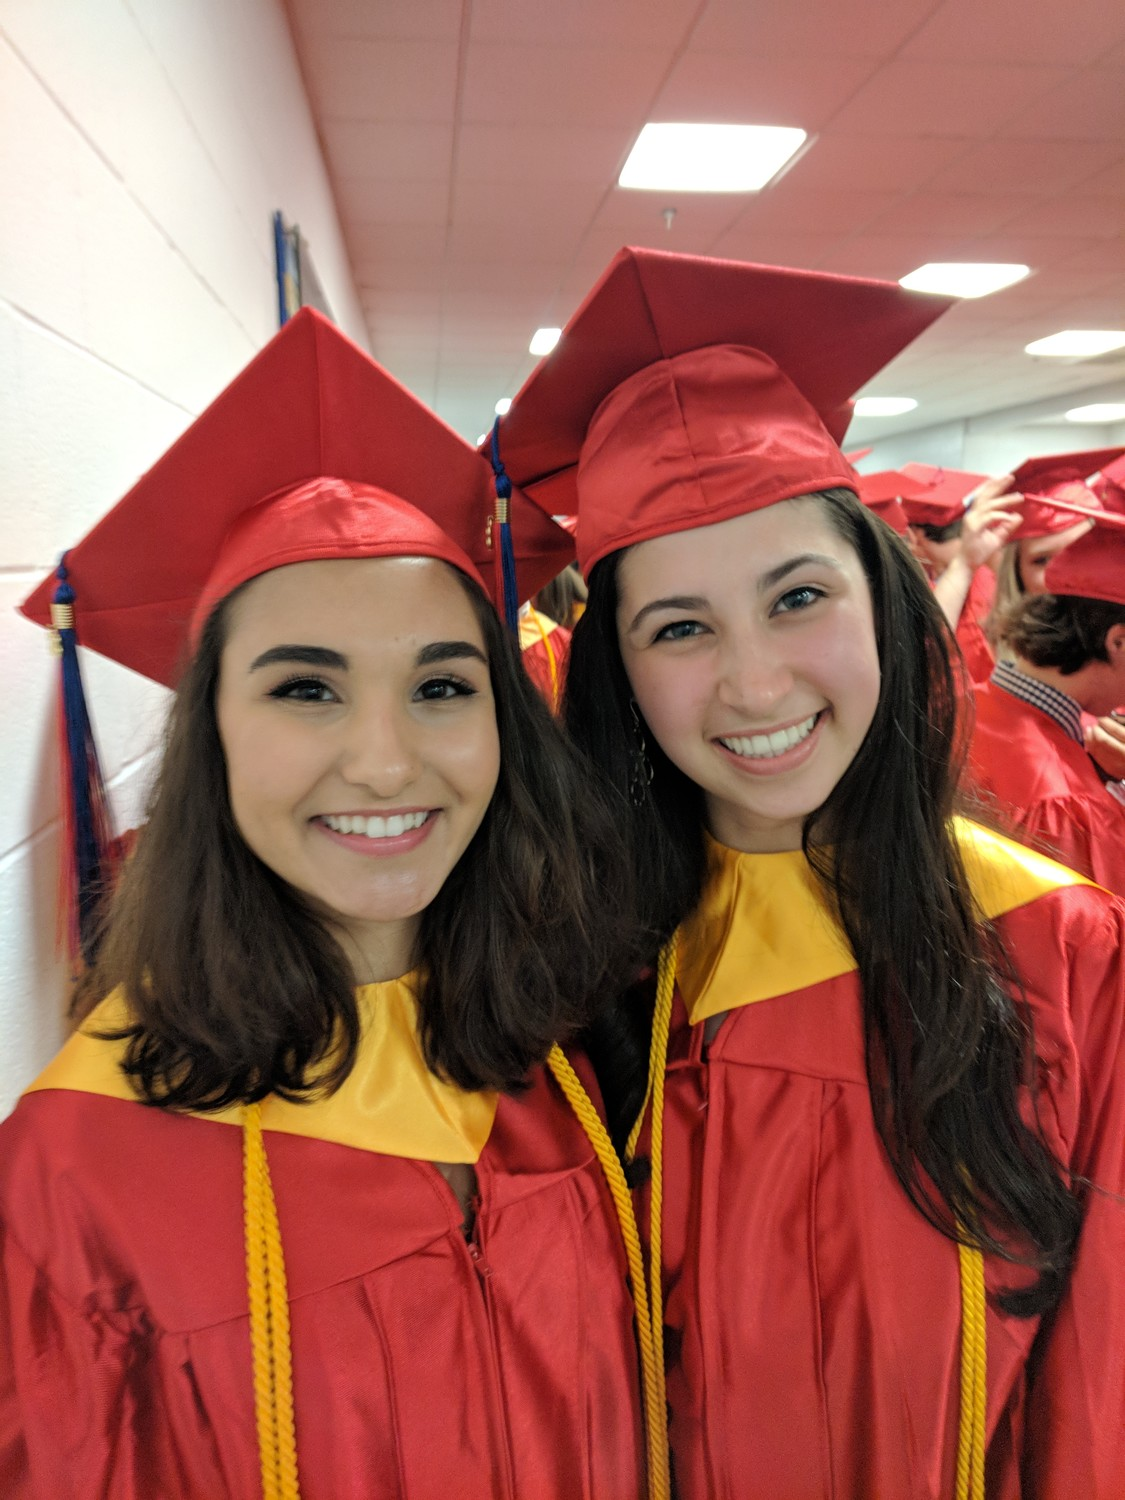 """We're moving on to the next chapter in our lives,"" Colette Brancaccio, right, said next to Katherine Bacchi."